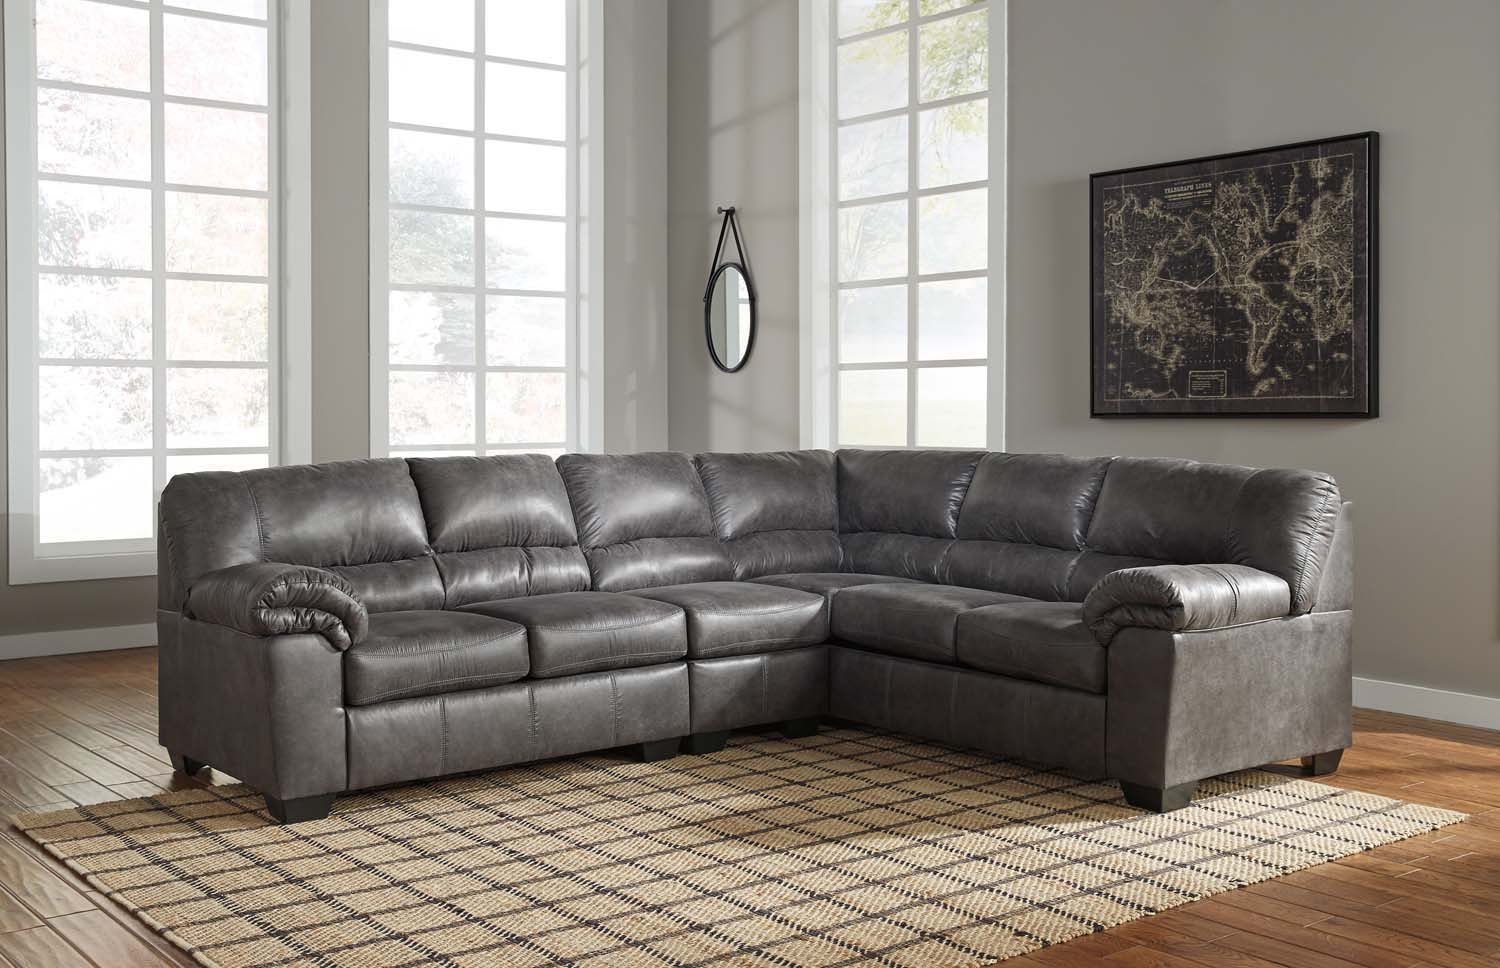 Gmk Home & Living Sofa Ashley Furniture Sectionals In Fairport Ny